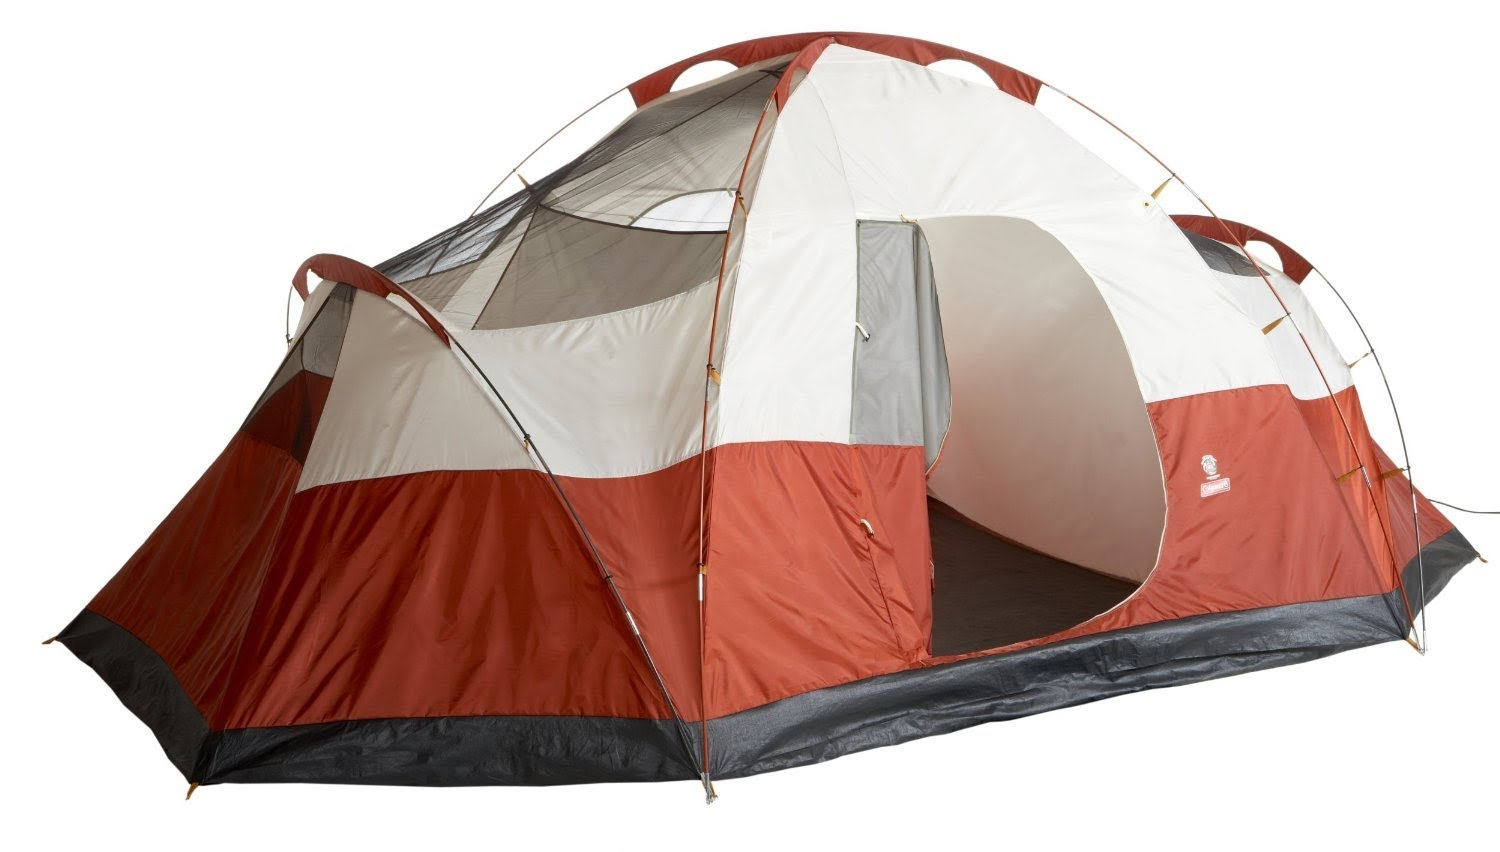 Coleman Red Canyon 17-Foot by 10-Foot 8-Person Modified Dome Tent - Missouri Float Trips  sc 1 st  Float Trips in Missouri & Coleman Red Canyon 17-Foot by 10-Foot 8-Person Modified Dome Tent ...